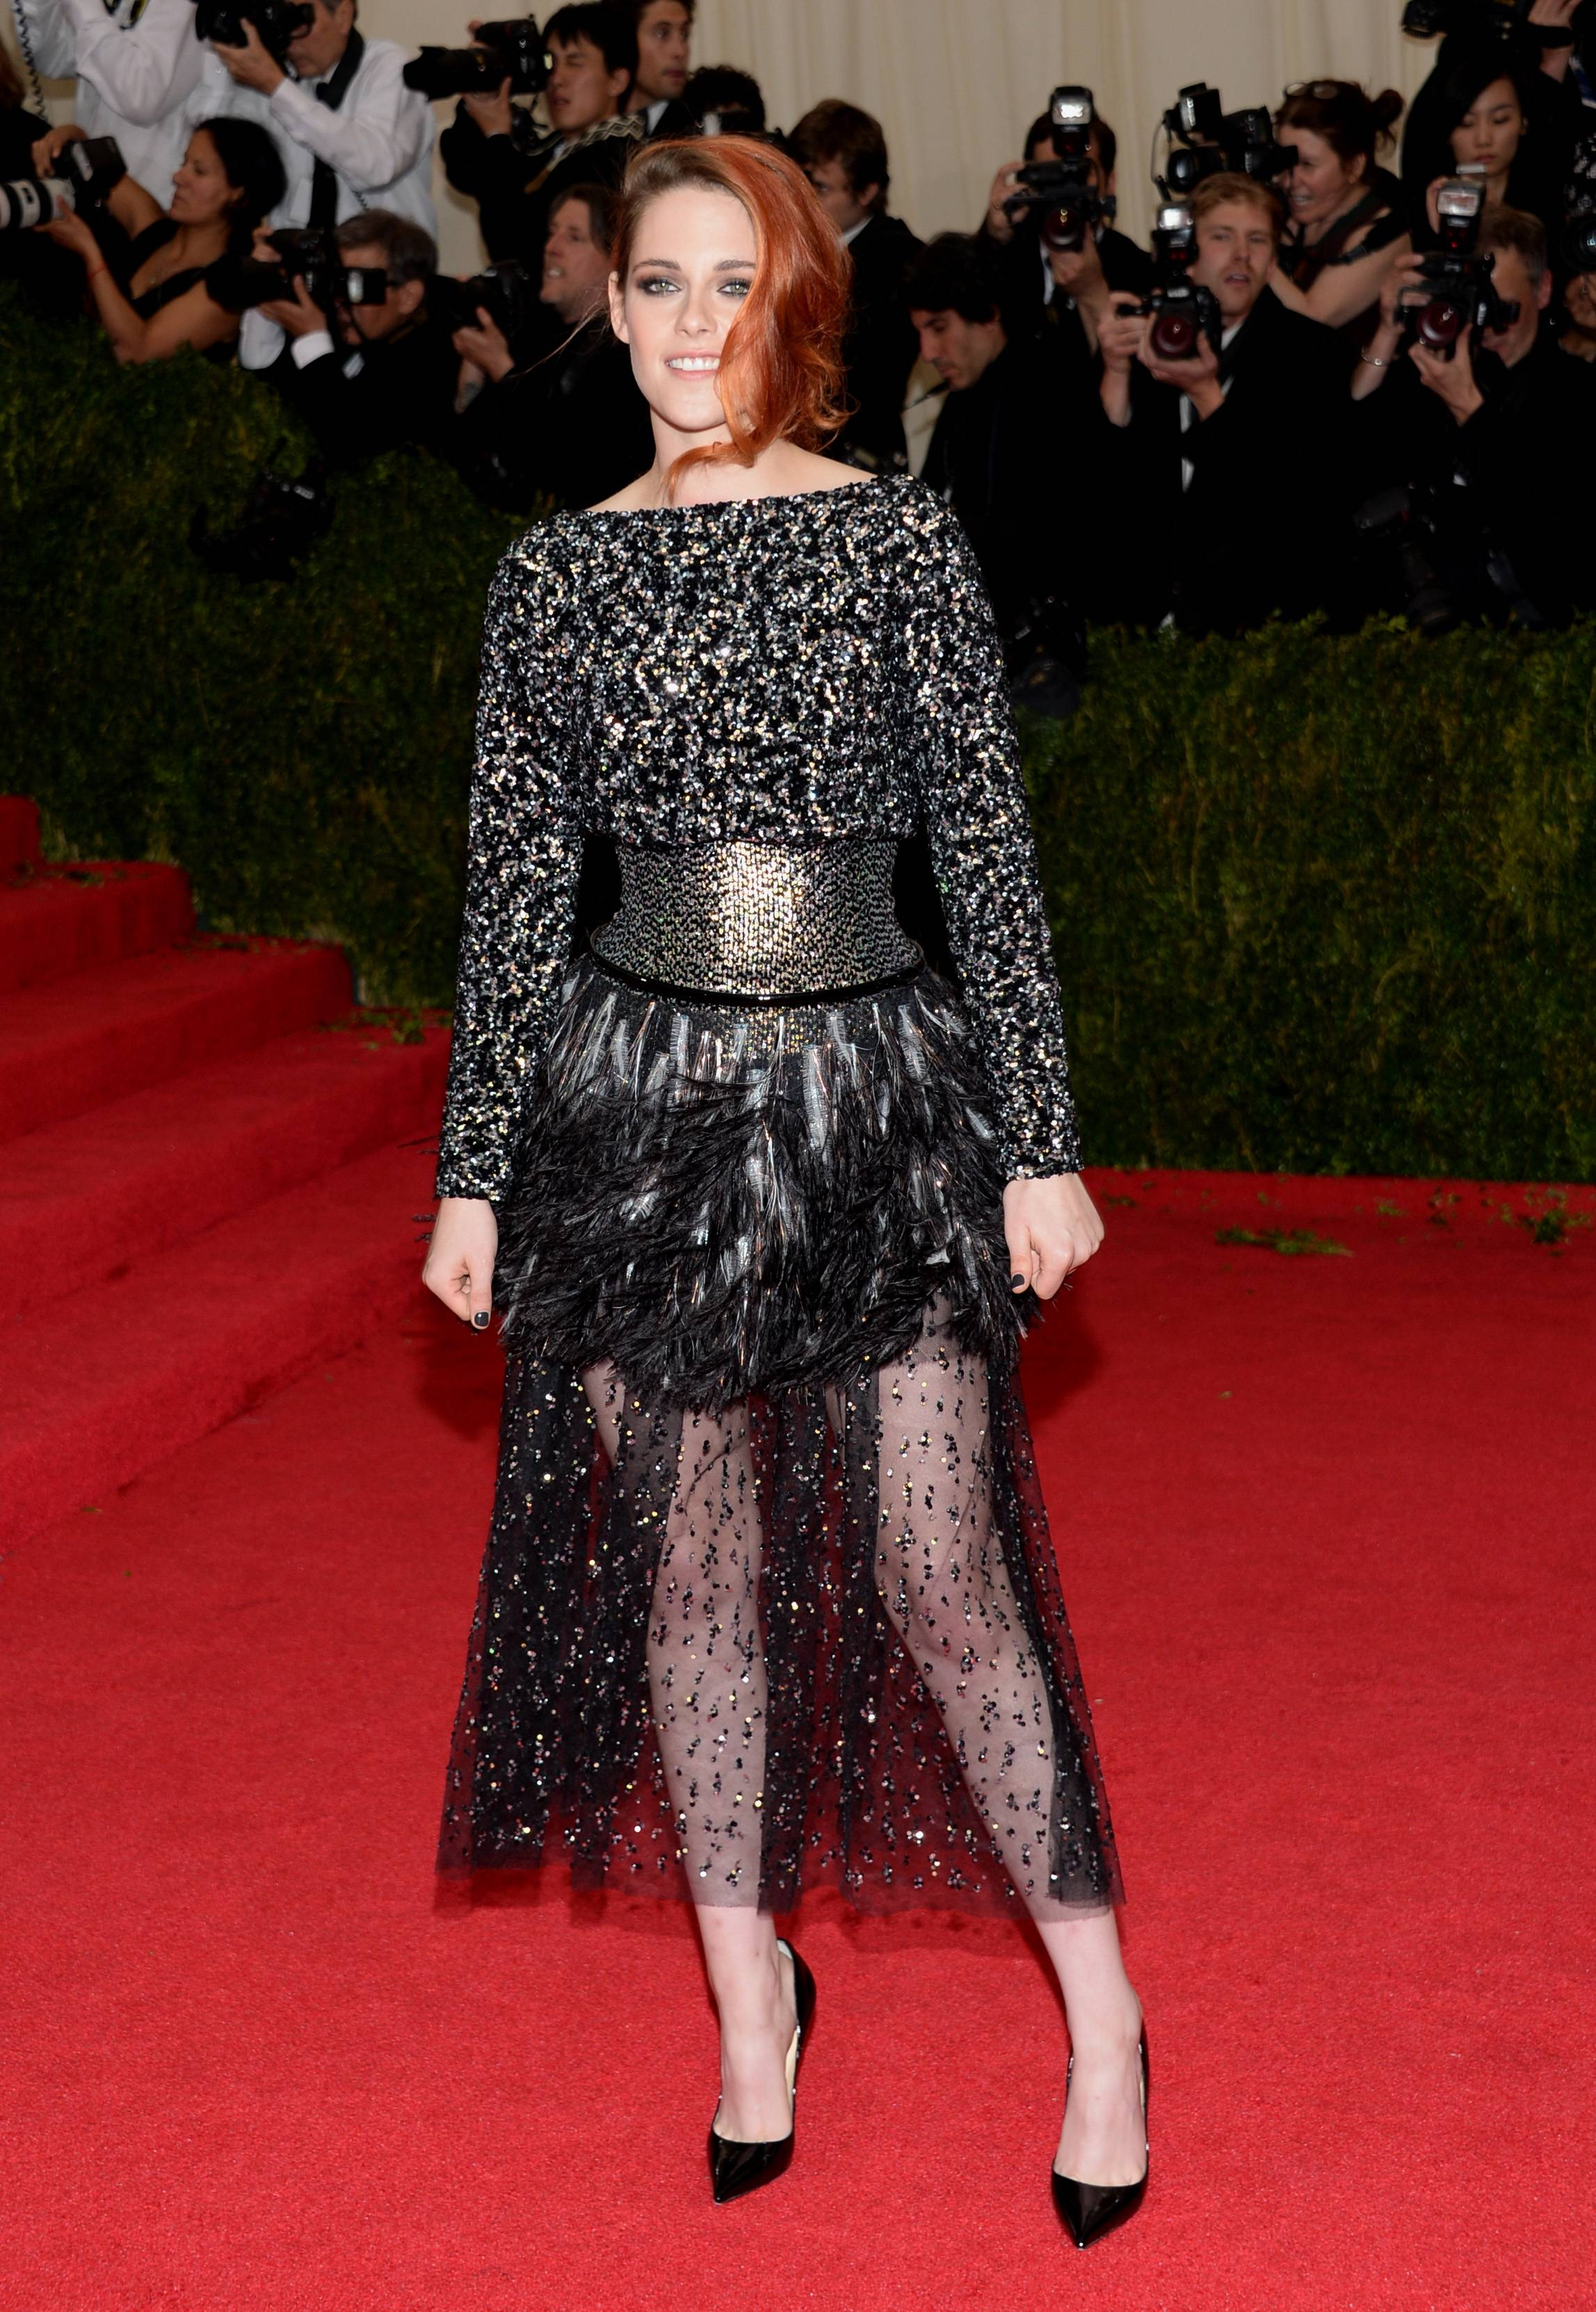 Kristen Stewart went for all black at The Metropolitan Museum of Art's Costume Institute benefit gala.